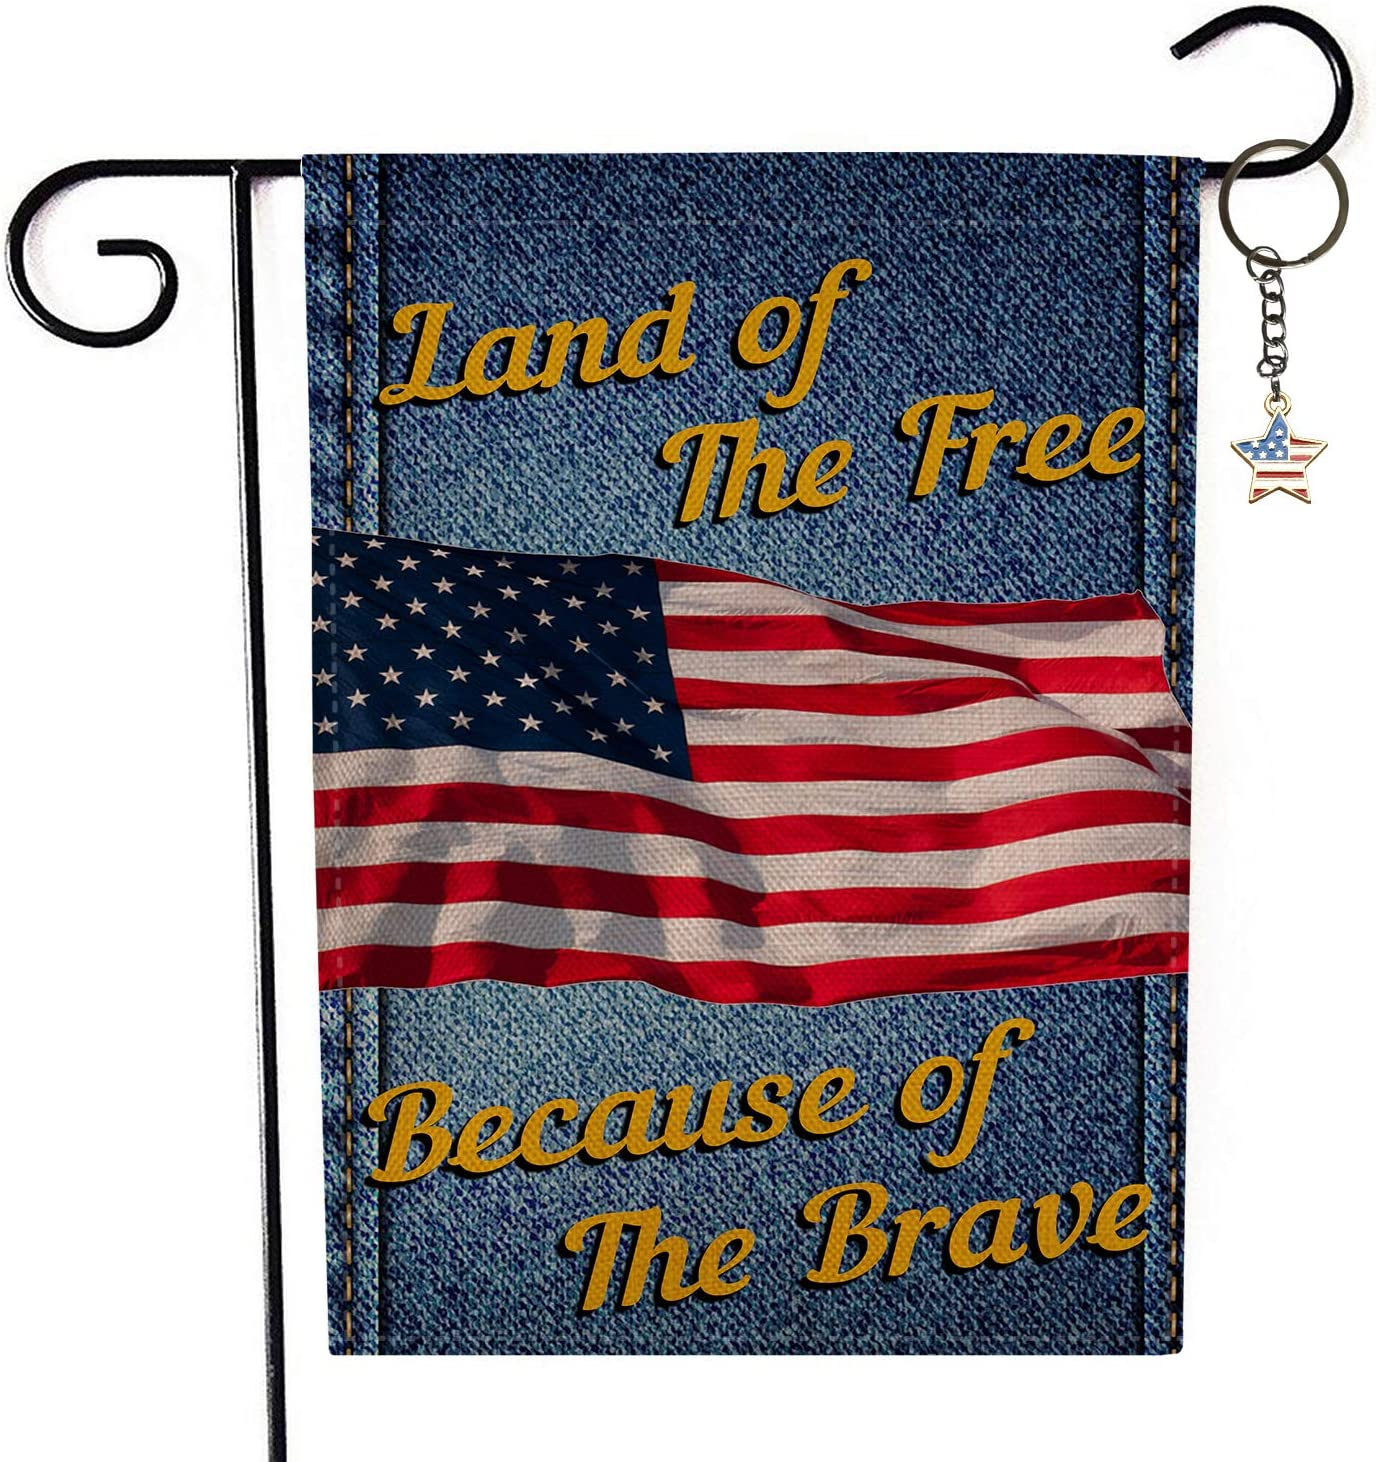 Amazon Com Angeloken Land Of The Free Because Of The Brave Vintage Garden Flags Yard Flag Vertical Double Sided Burlap Season House Flags Farm Lawn Outdoor Decor Garden Banner 12 5 X 18